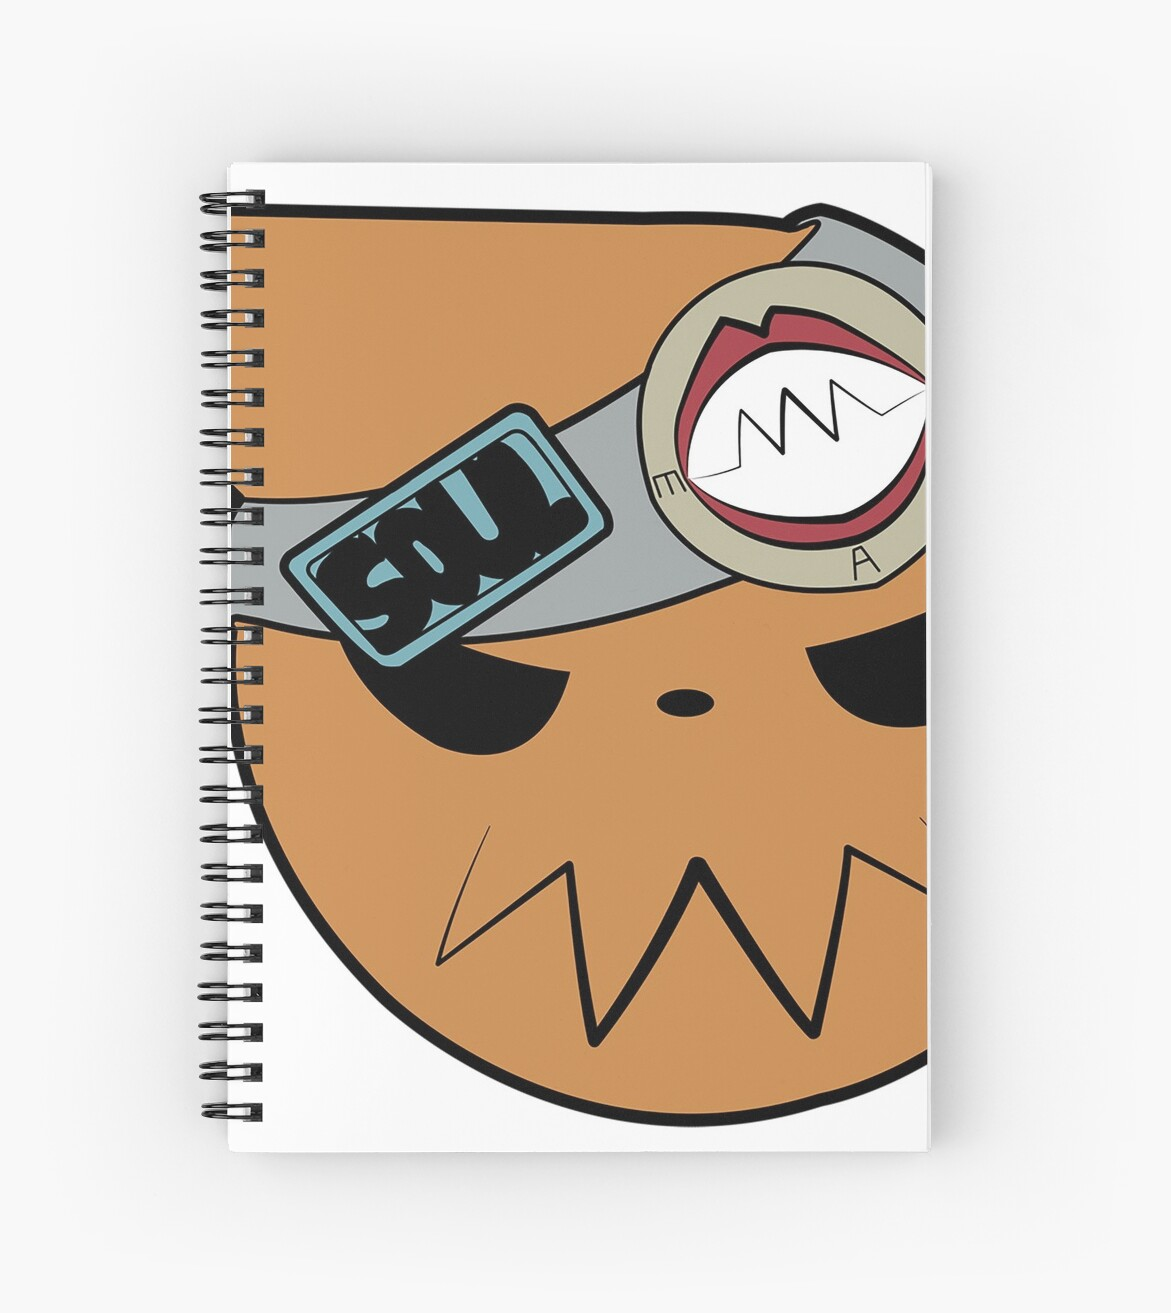 Soul Eater Sign And Headband Spiral Notebooks By Pandainkart